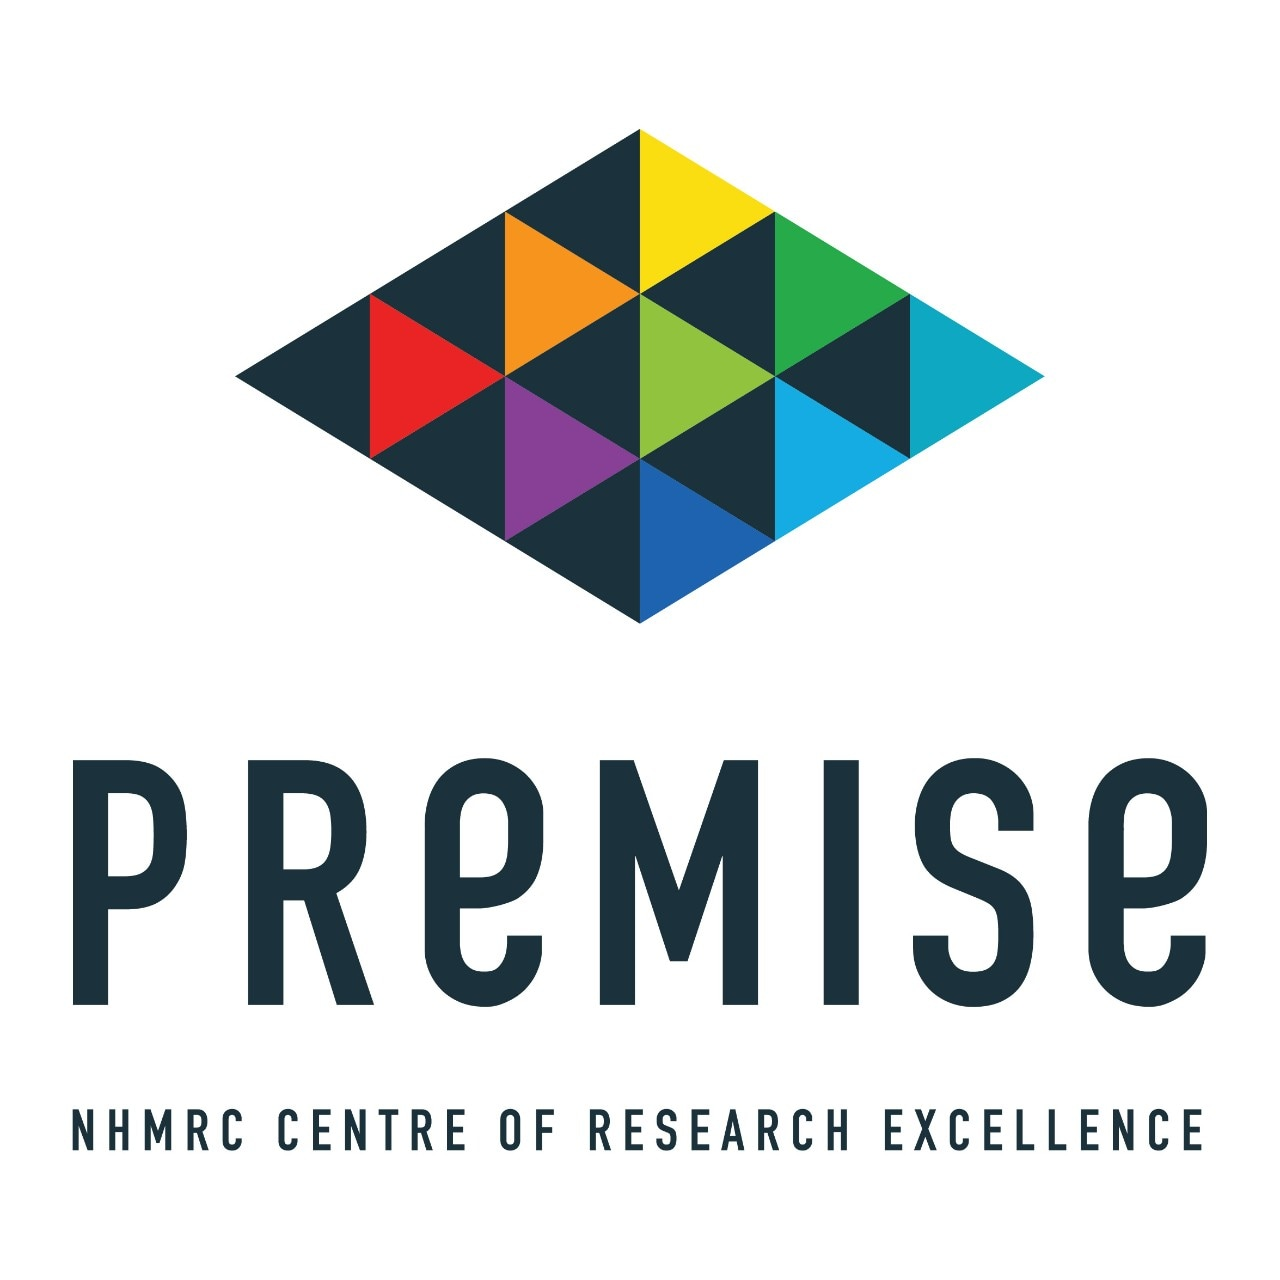 PREMISE NHMRC Centre of Research Excellence